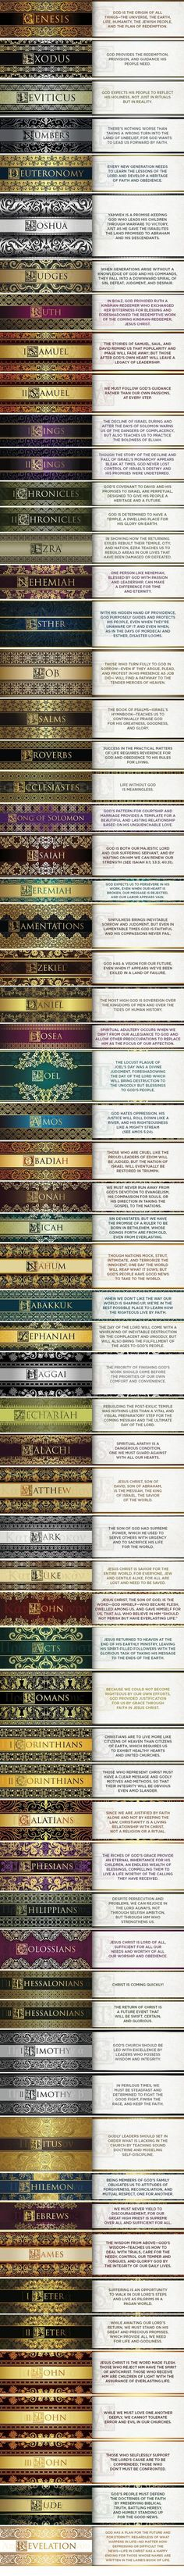 The 66 Books of the Bible each with a synopsis...